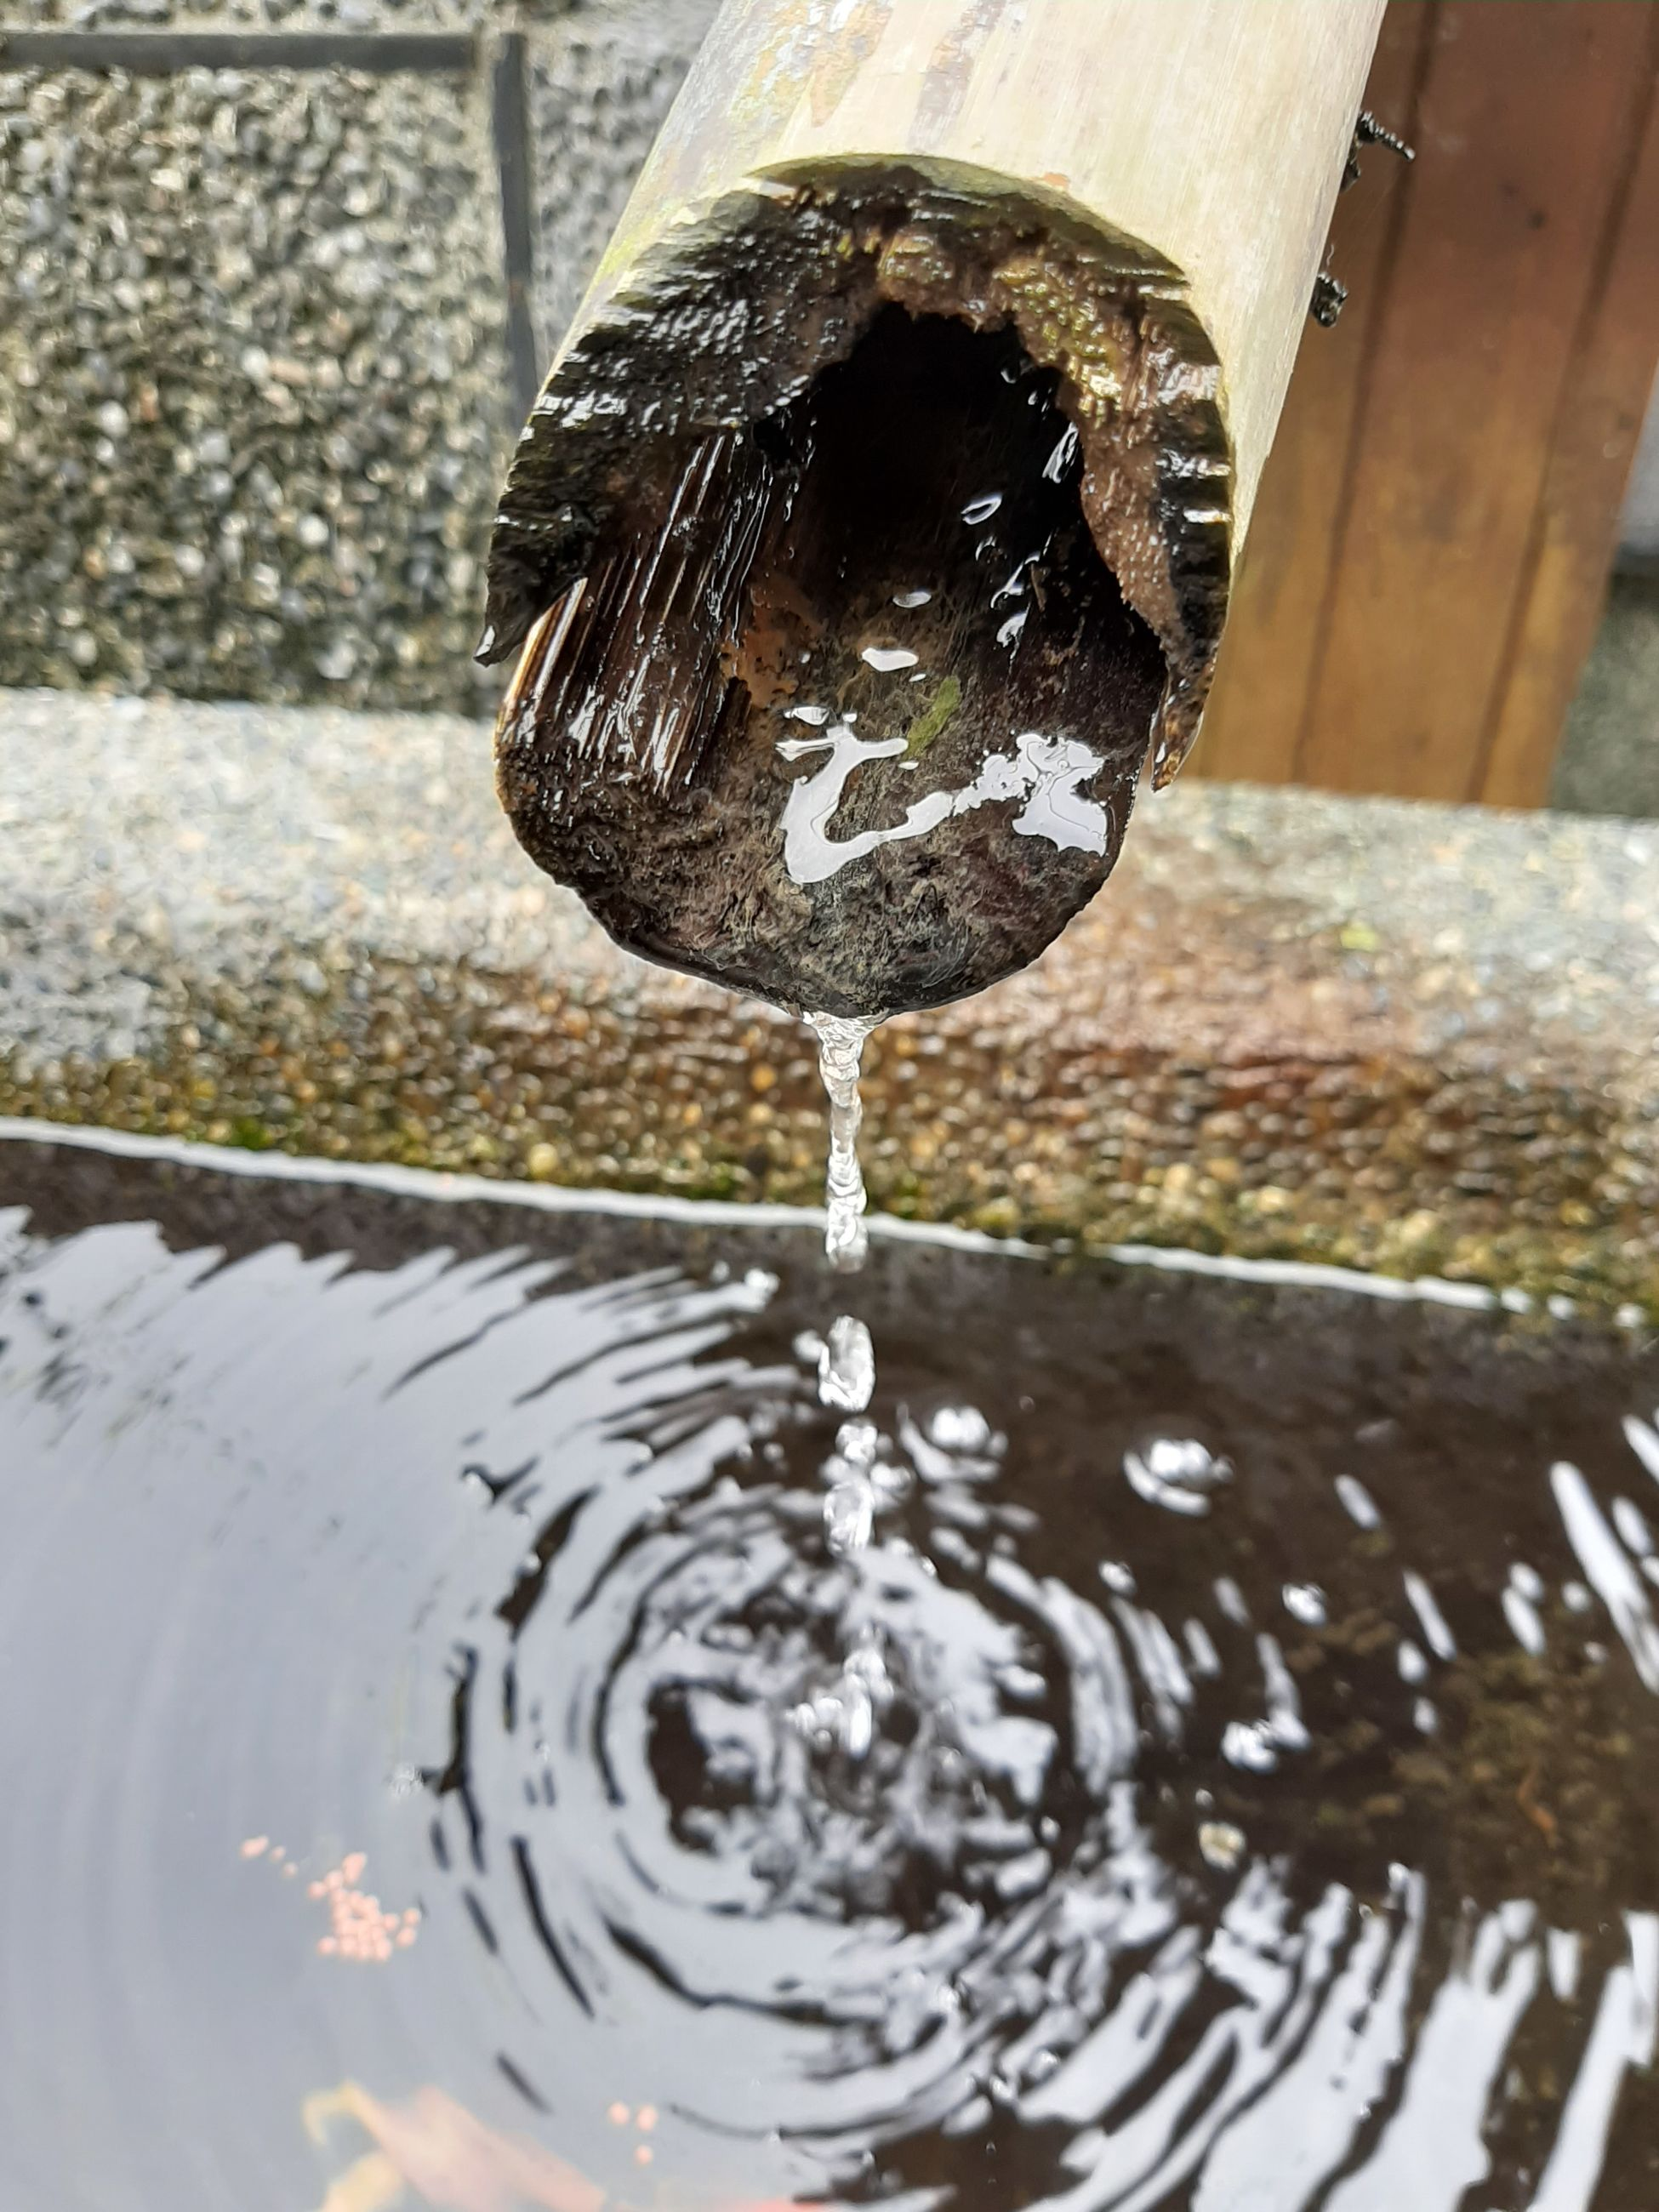 water, motion, pouring, nature, rippled, no people, fountain, drop, purity, day, focus on foreground, close-up, outdoors, falling, refreshment, flowing water, architecture, household equipment, running water, flowing